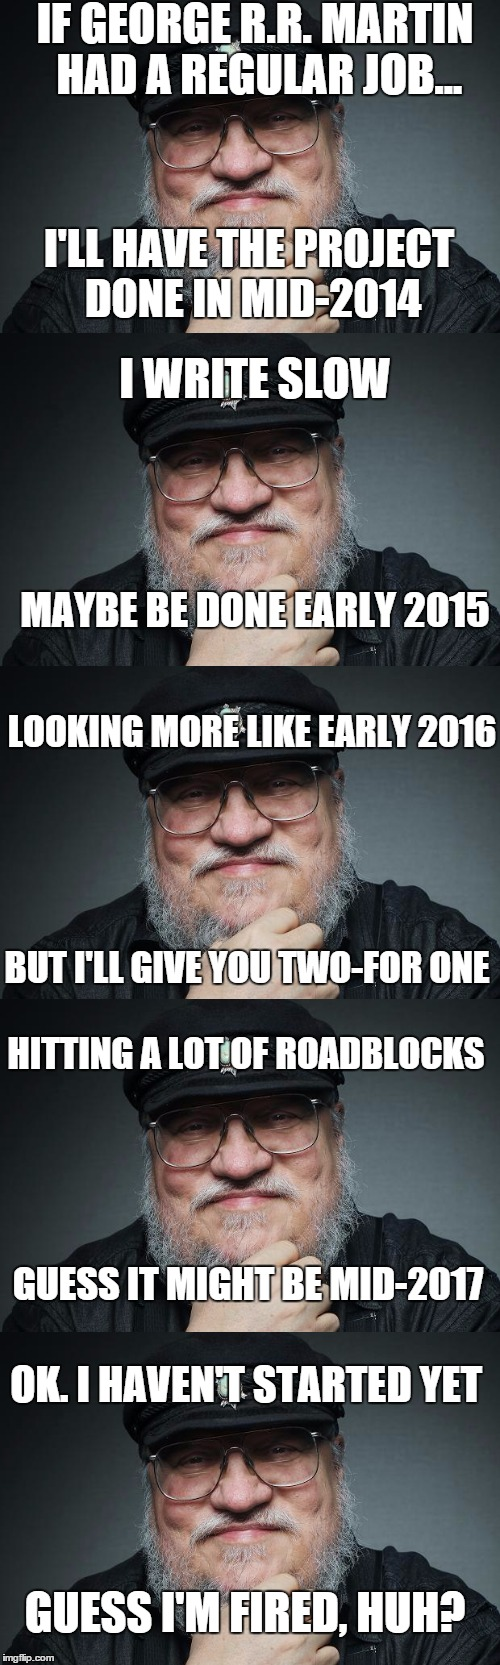 If George R.R. Martin had a regular job | IF GEORGE R.R. MARTIN HAD A REGULAR JOB... I'LL HAVE THE PROJECT DONE IN MID-2014 I WRITE SLOW MAYBE BE DONE EARLY 2015 LOOKING MORE LIKE EA | image tagged in george rr martin,game of thrones,fantasy,books,authors | made w/ Imgflip meme maker